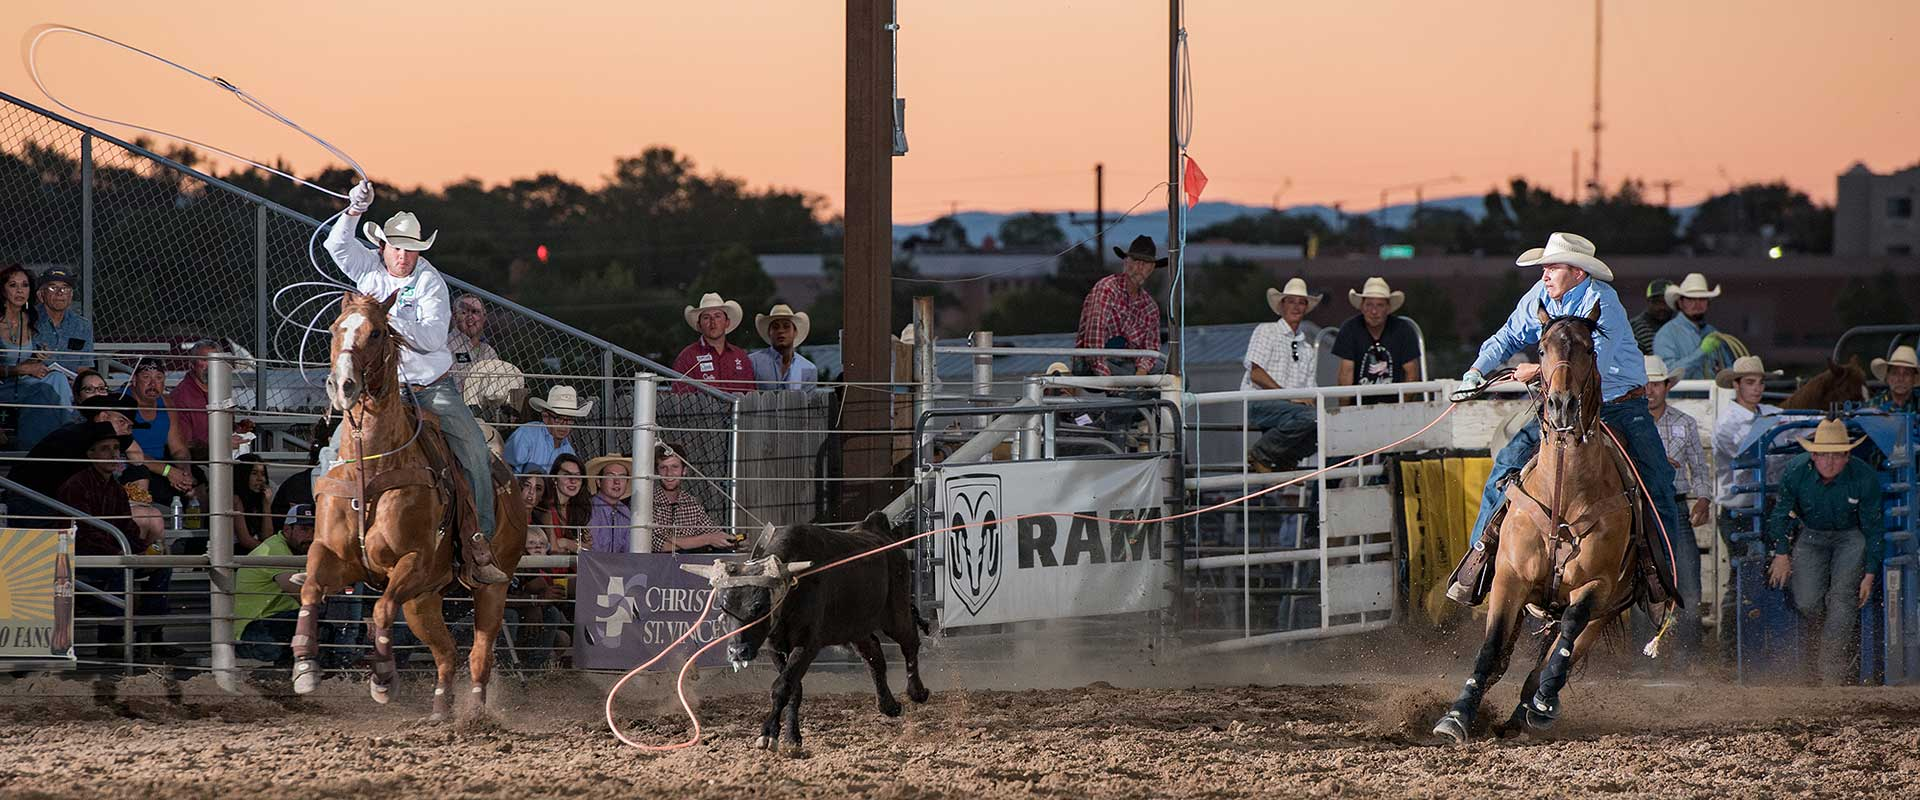 Cattle roping at the Rodeo de Santa Fe